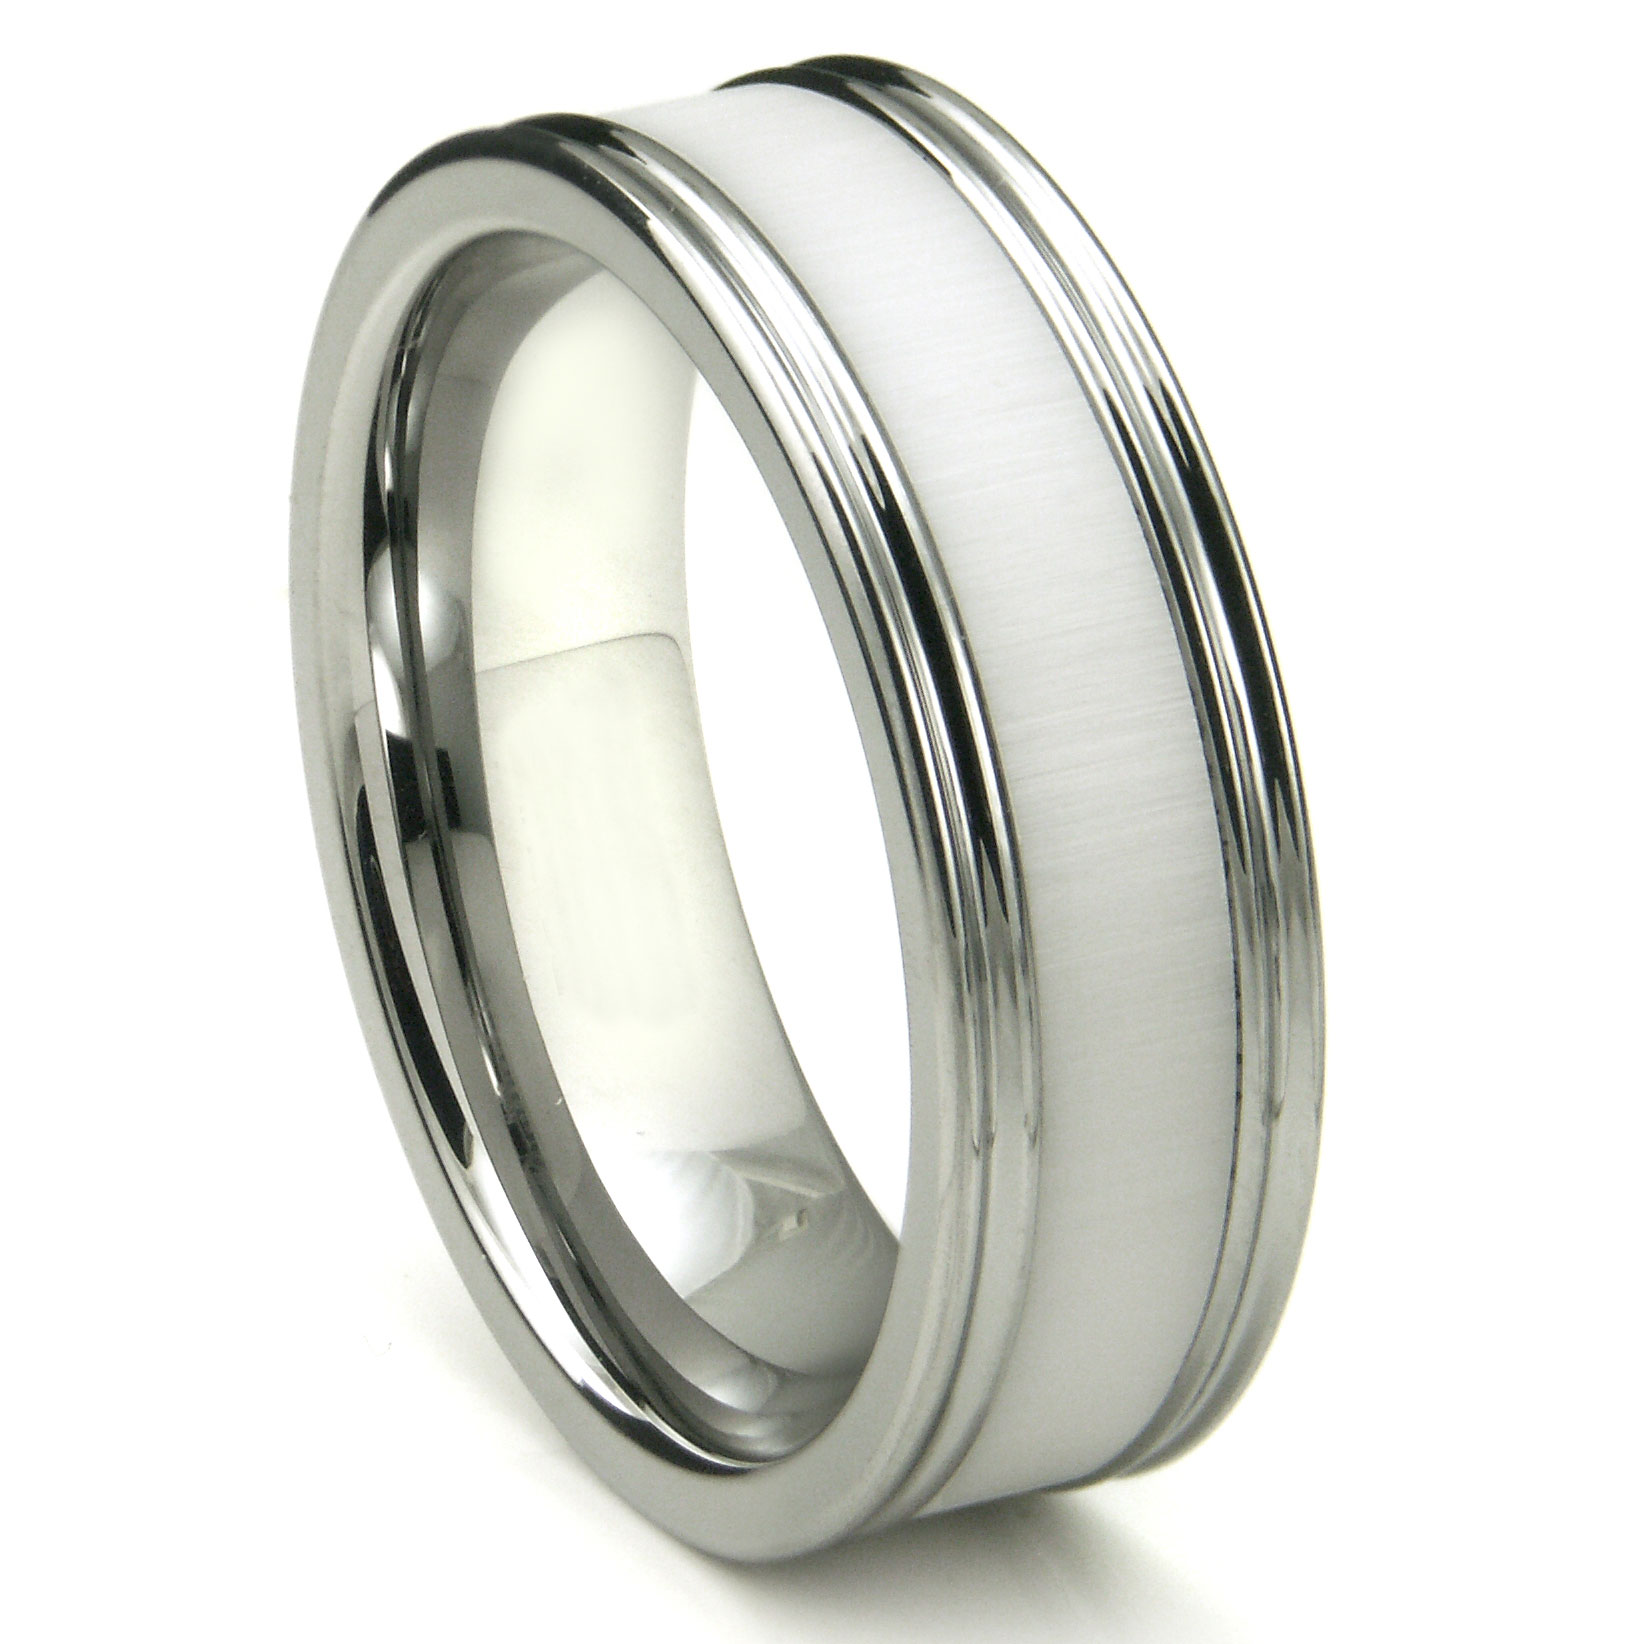 india buy infinitum platinum wedding the jewellery band cost in bands designs ring for him rings online pics